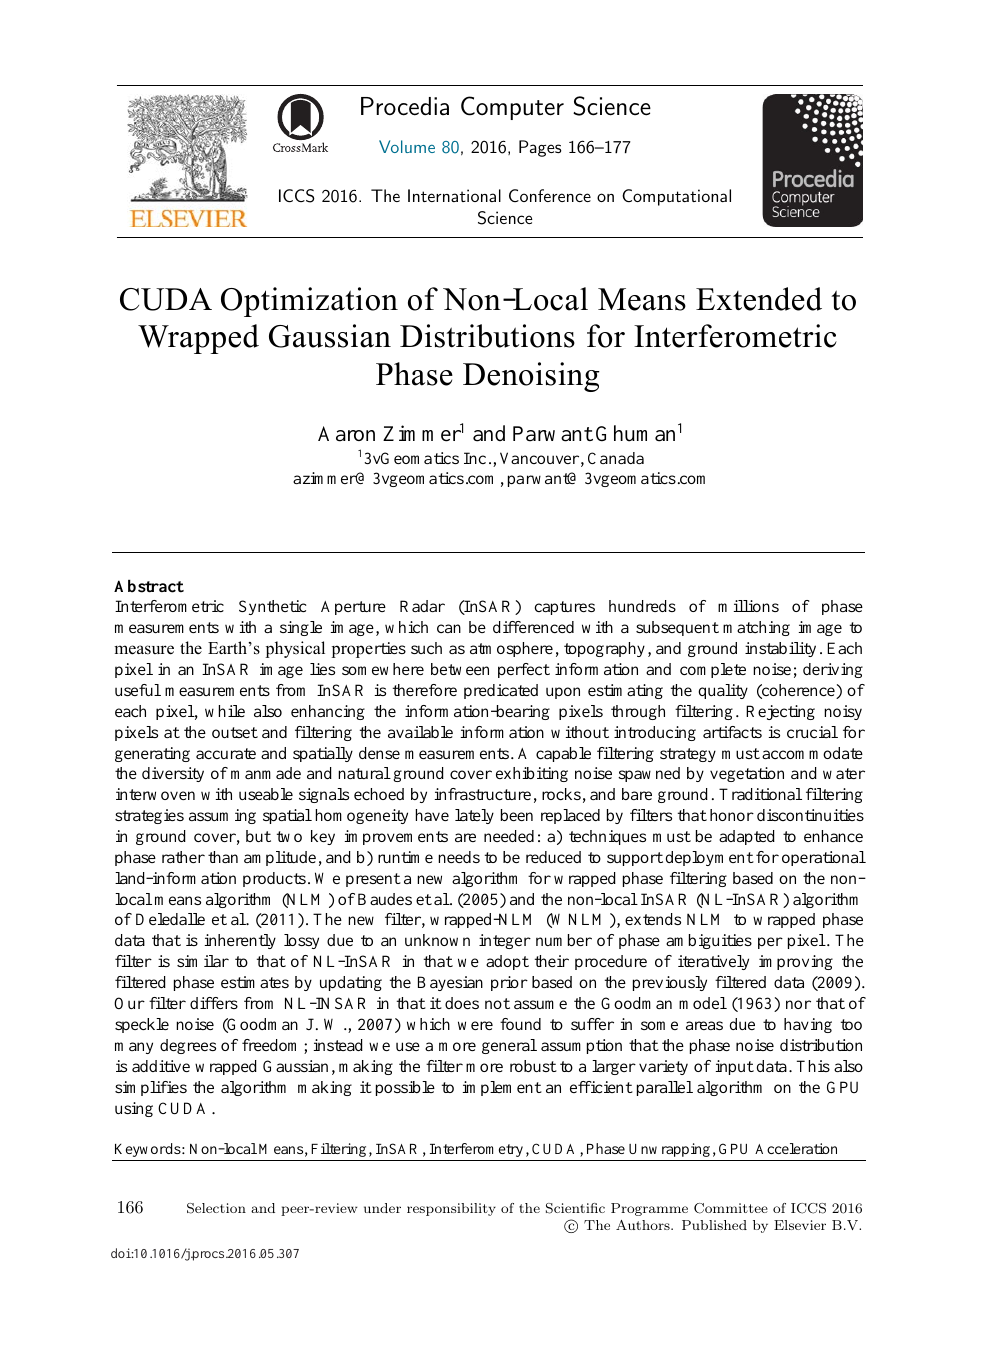 CUDA Optimization of Non-local Means Extended to Wrapped Gaussian